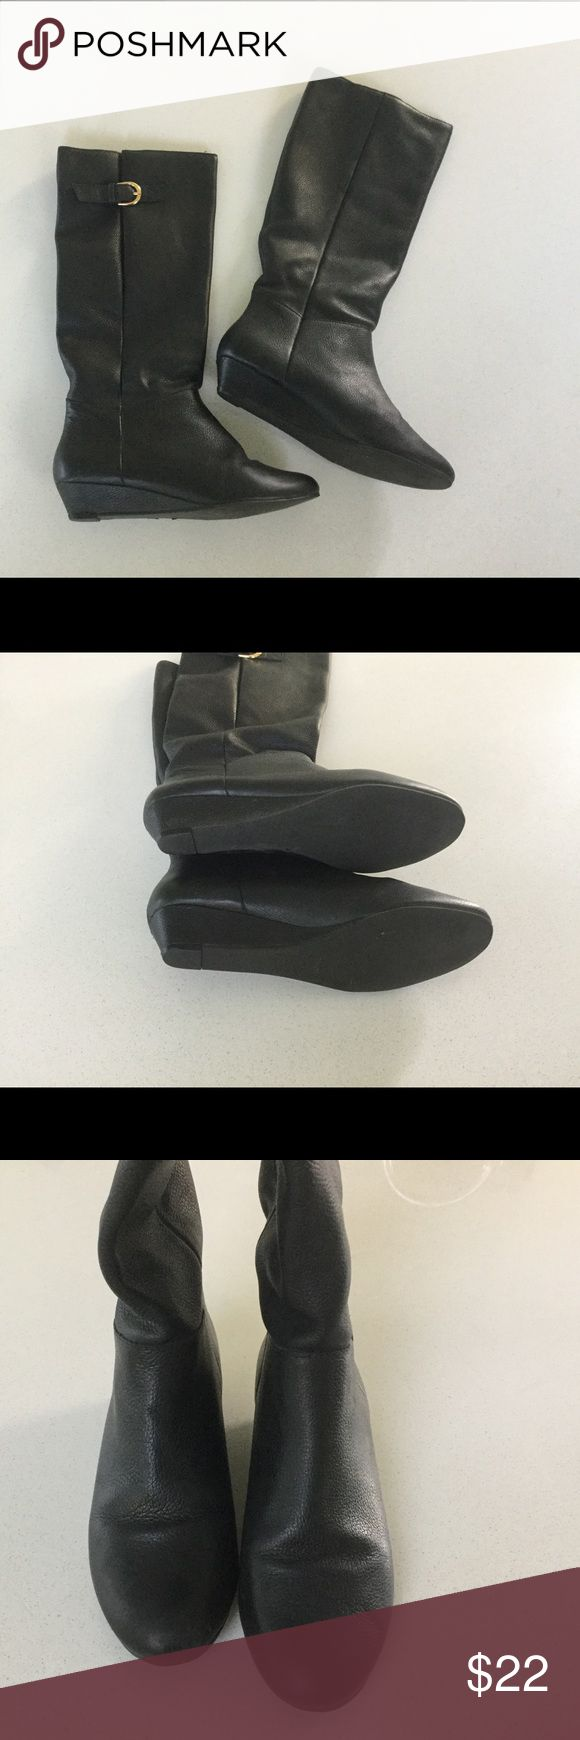 """Steve Madden Black Leather Intyce boots SZ 7 Steve Madden """"Intyce"""" black leather boots in women's size 7.  Small heel and adjustable gold buckle detail.  These are in excellent condition with minimal wear on the soles and no other visible wear, no flaws. Steve Madden Shoes Heeled Boots"""